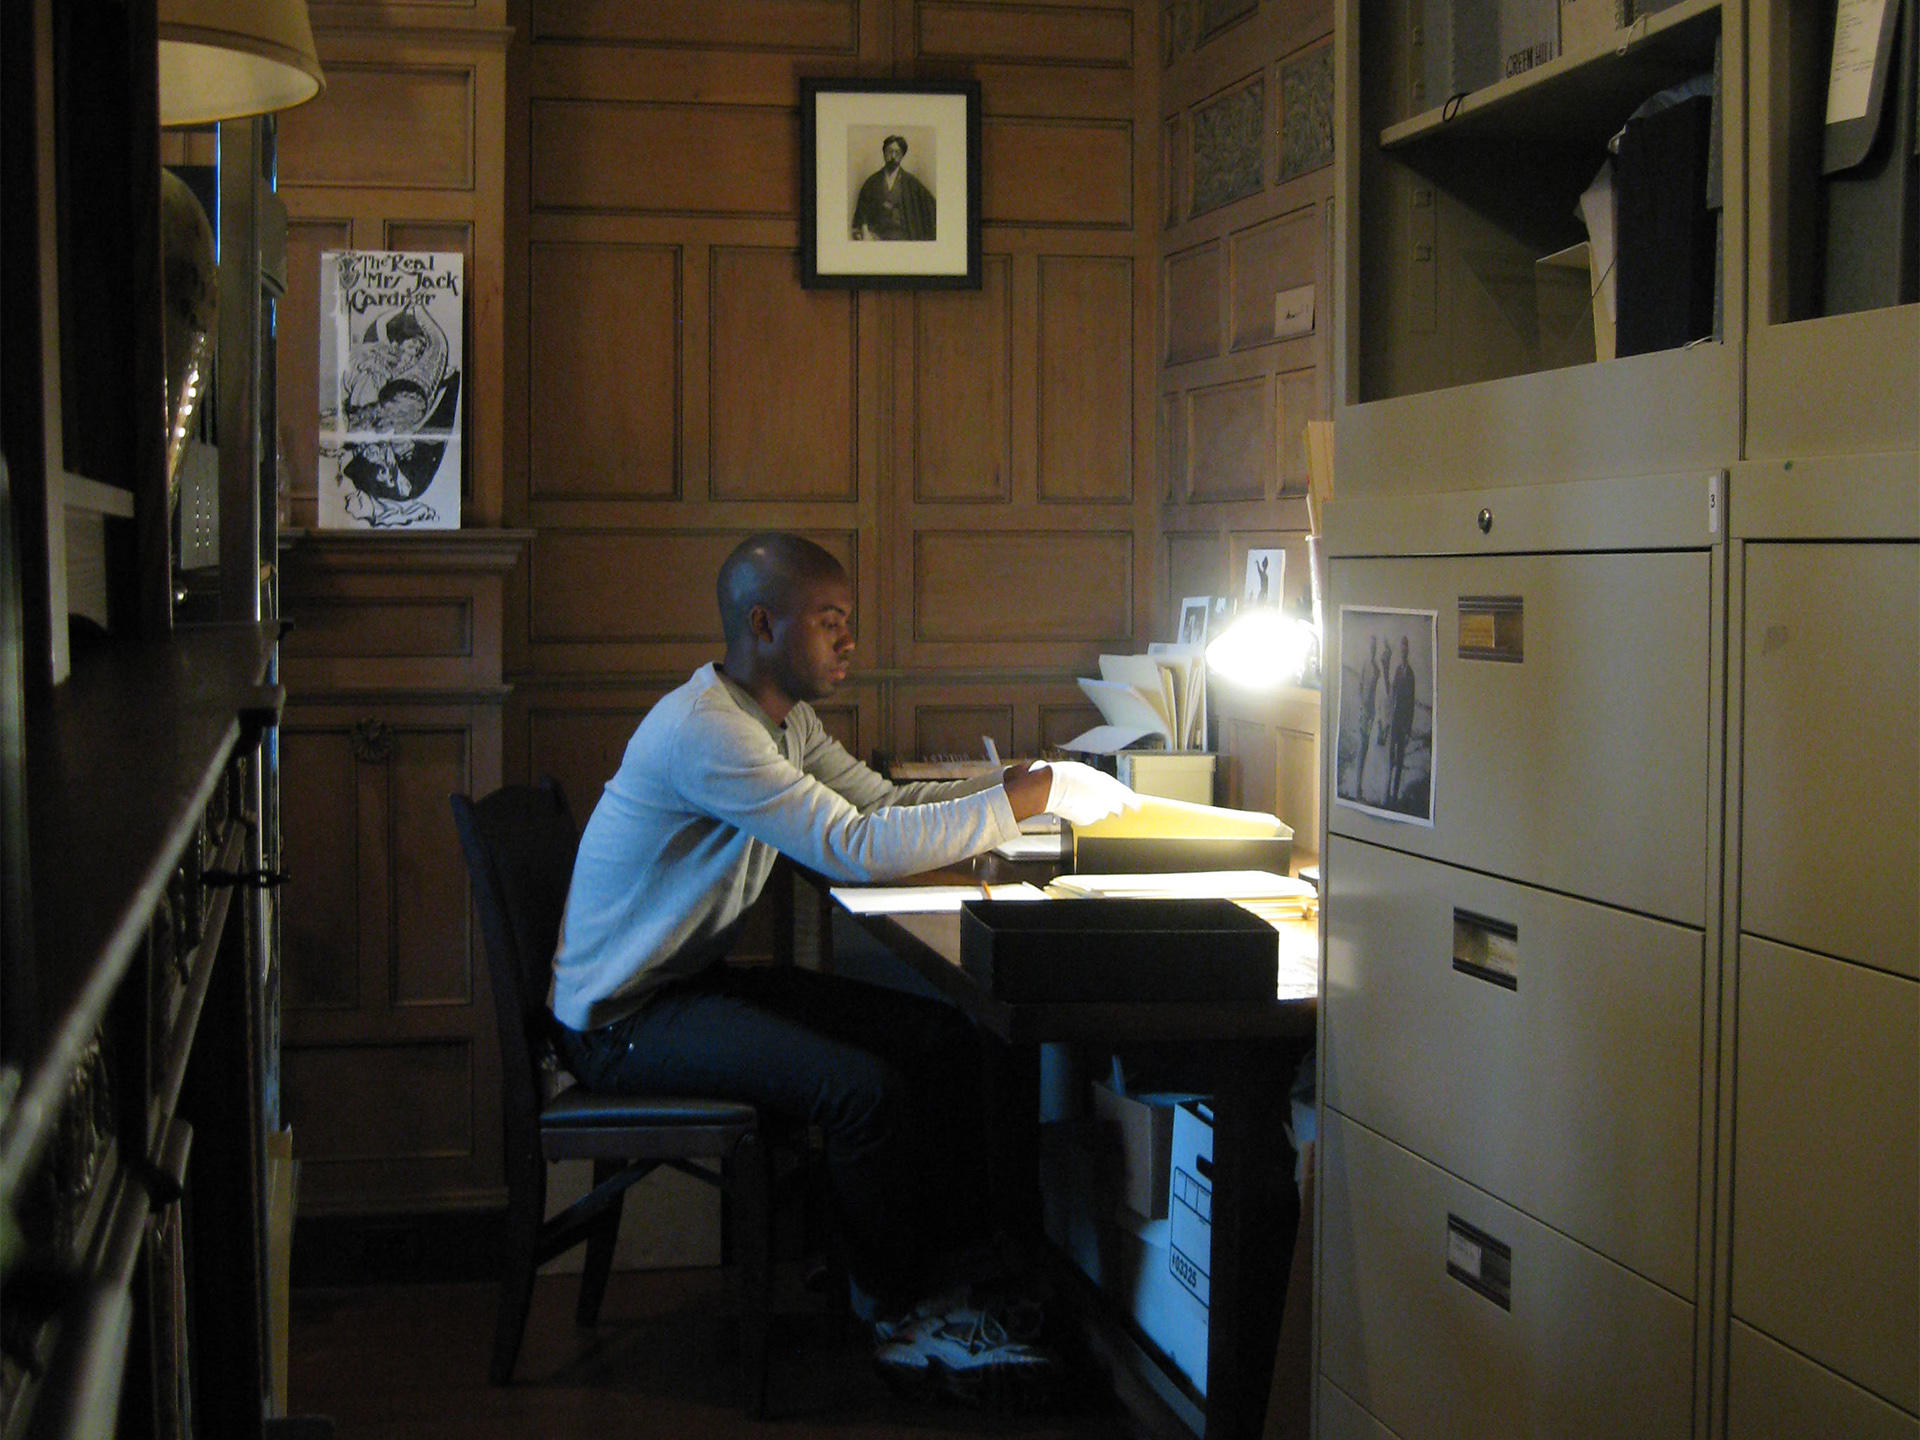 Adam Pendleton working in the archives, 2008